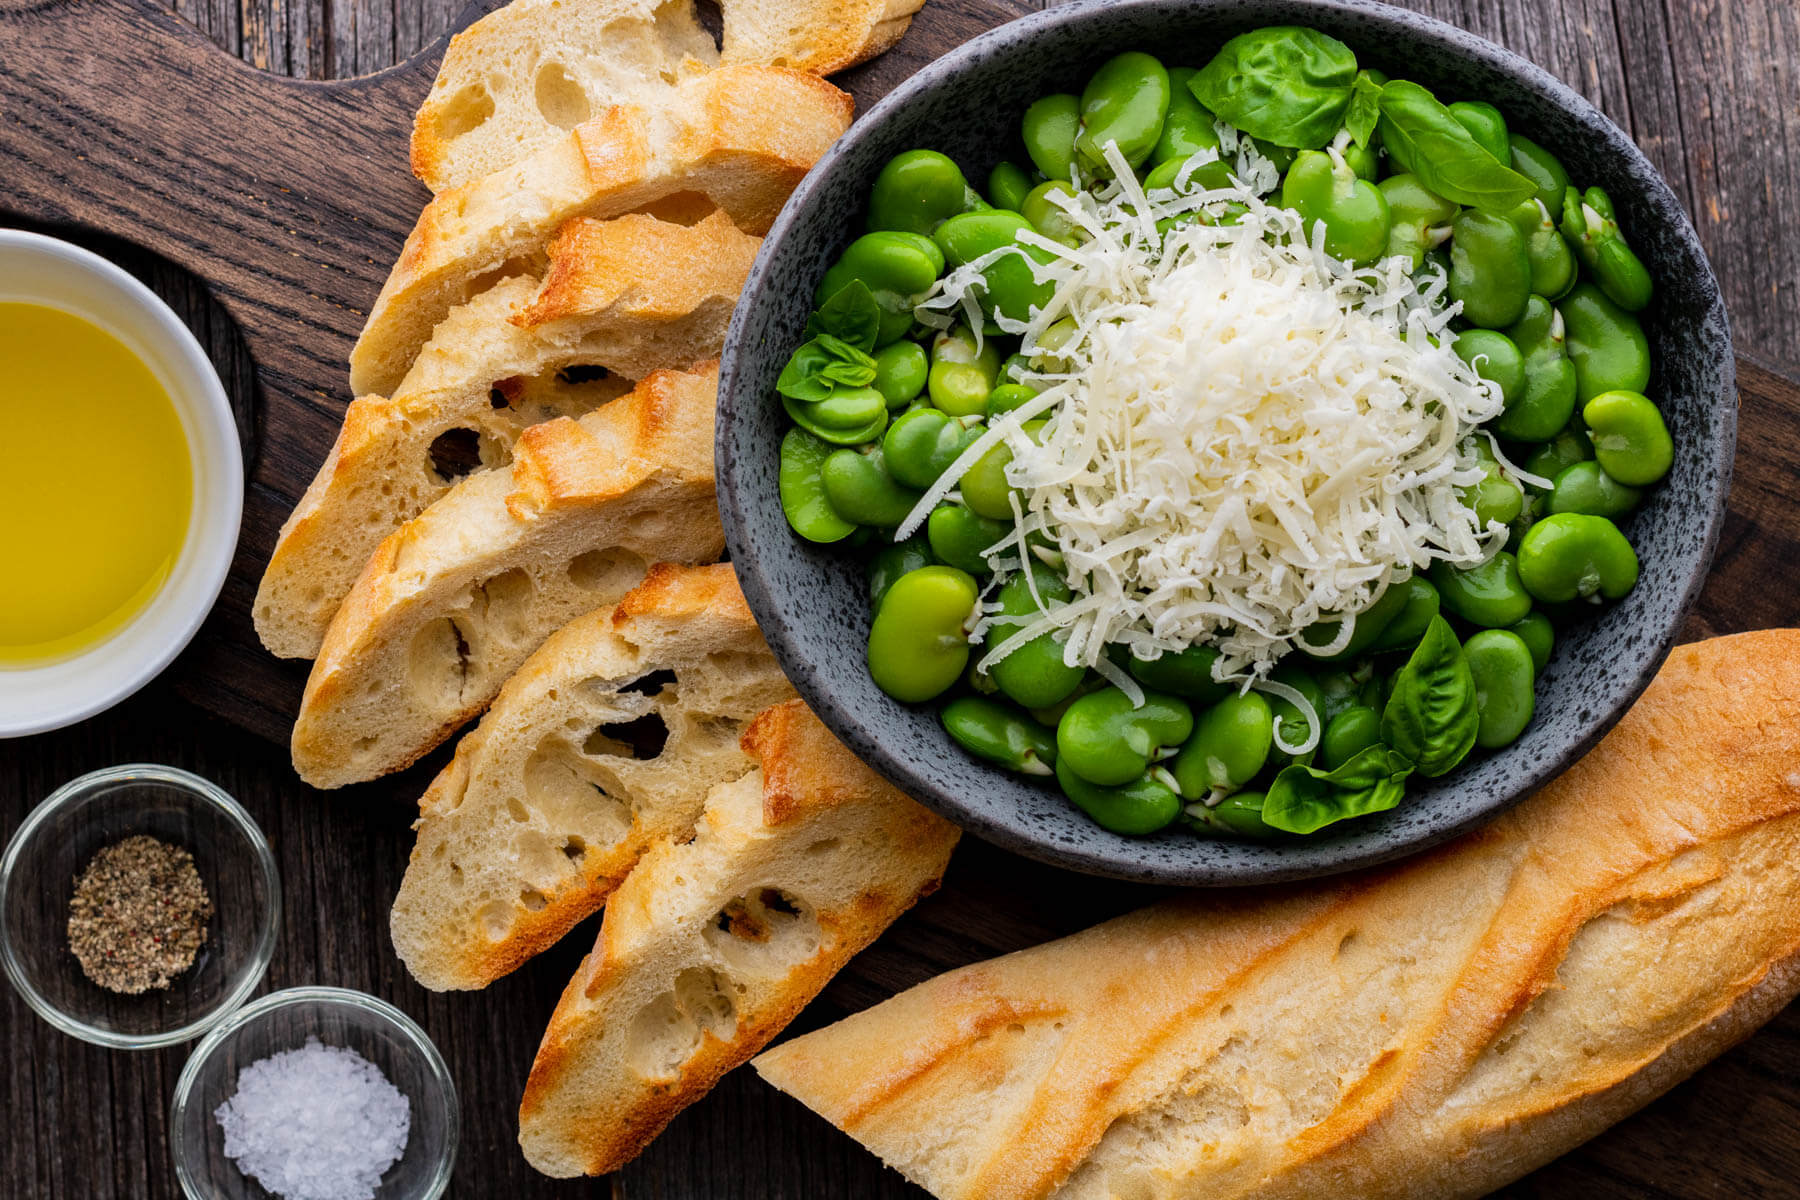 A bowl of bright green fava beans with the ingredients needed to make fava bean crostini.